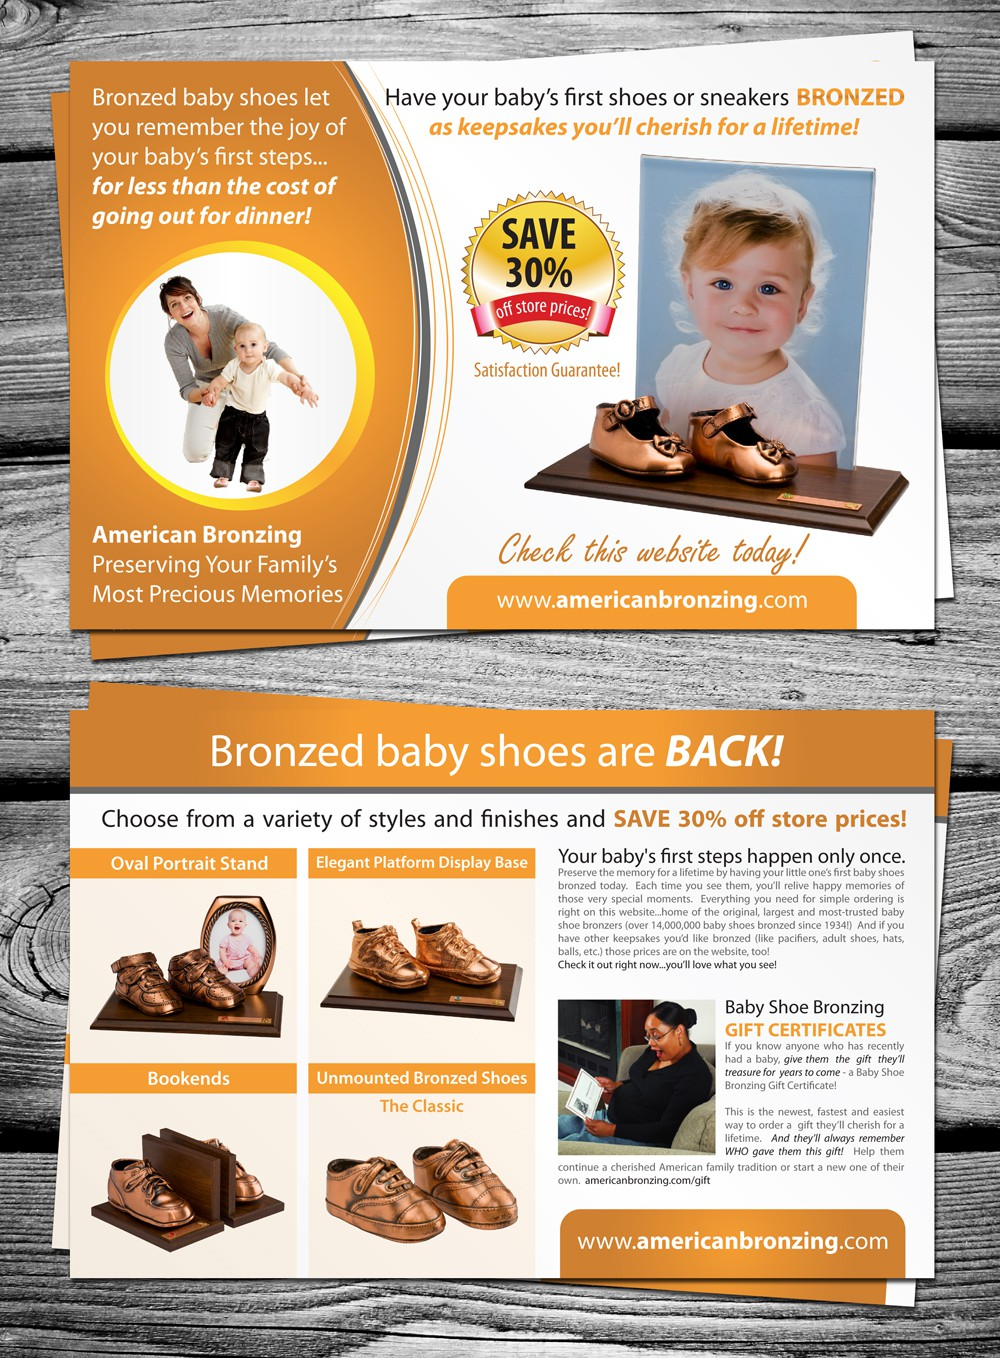 New print or packaging design wanted for American Bronzing Co